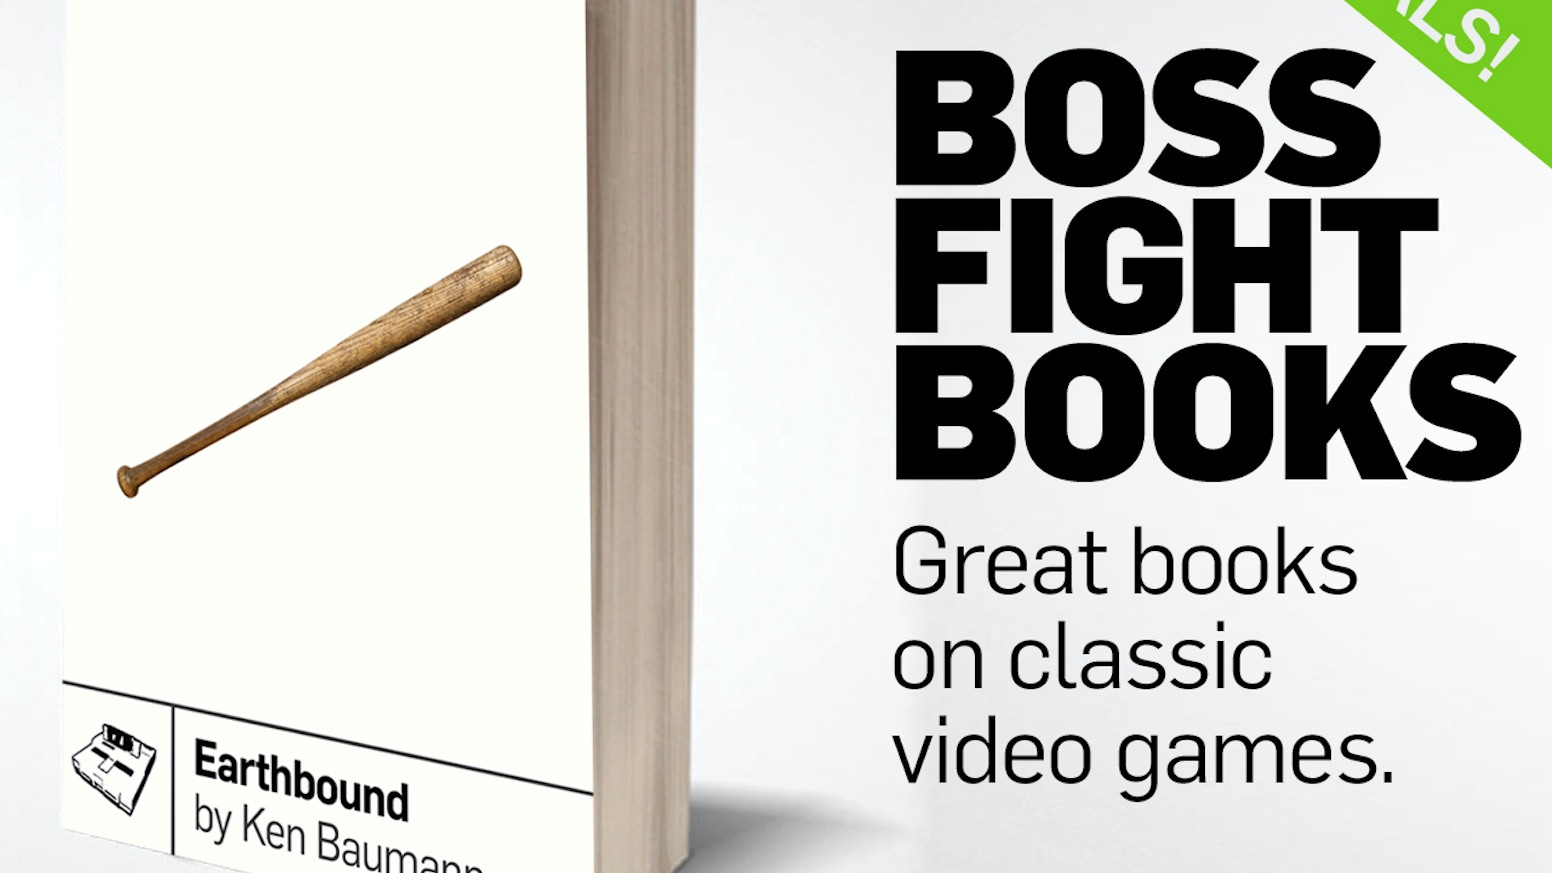 A new press for great books on classic video games. Our launch titles: Earthbound, Galaga, Super Mario Bros 2, ZZT, Jagged Alliance 2.